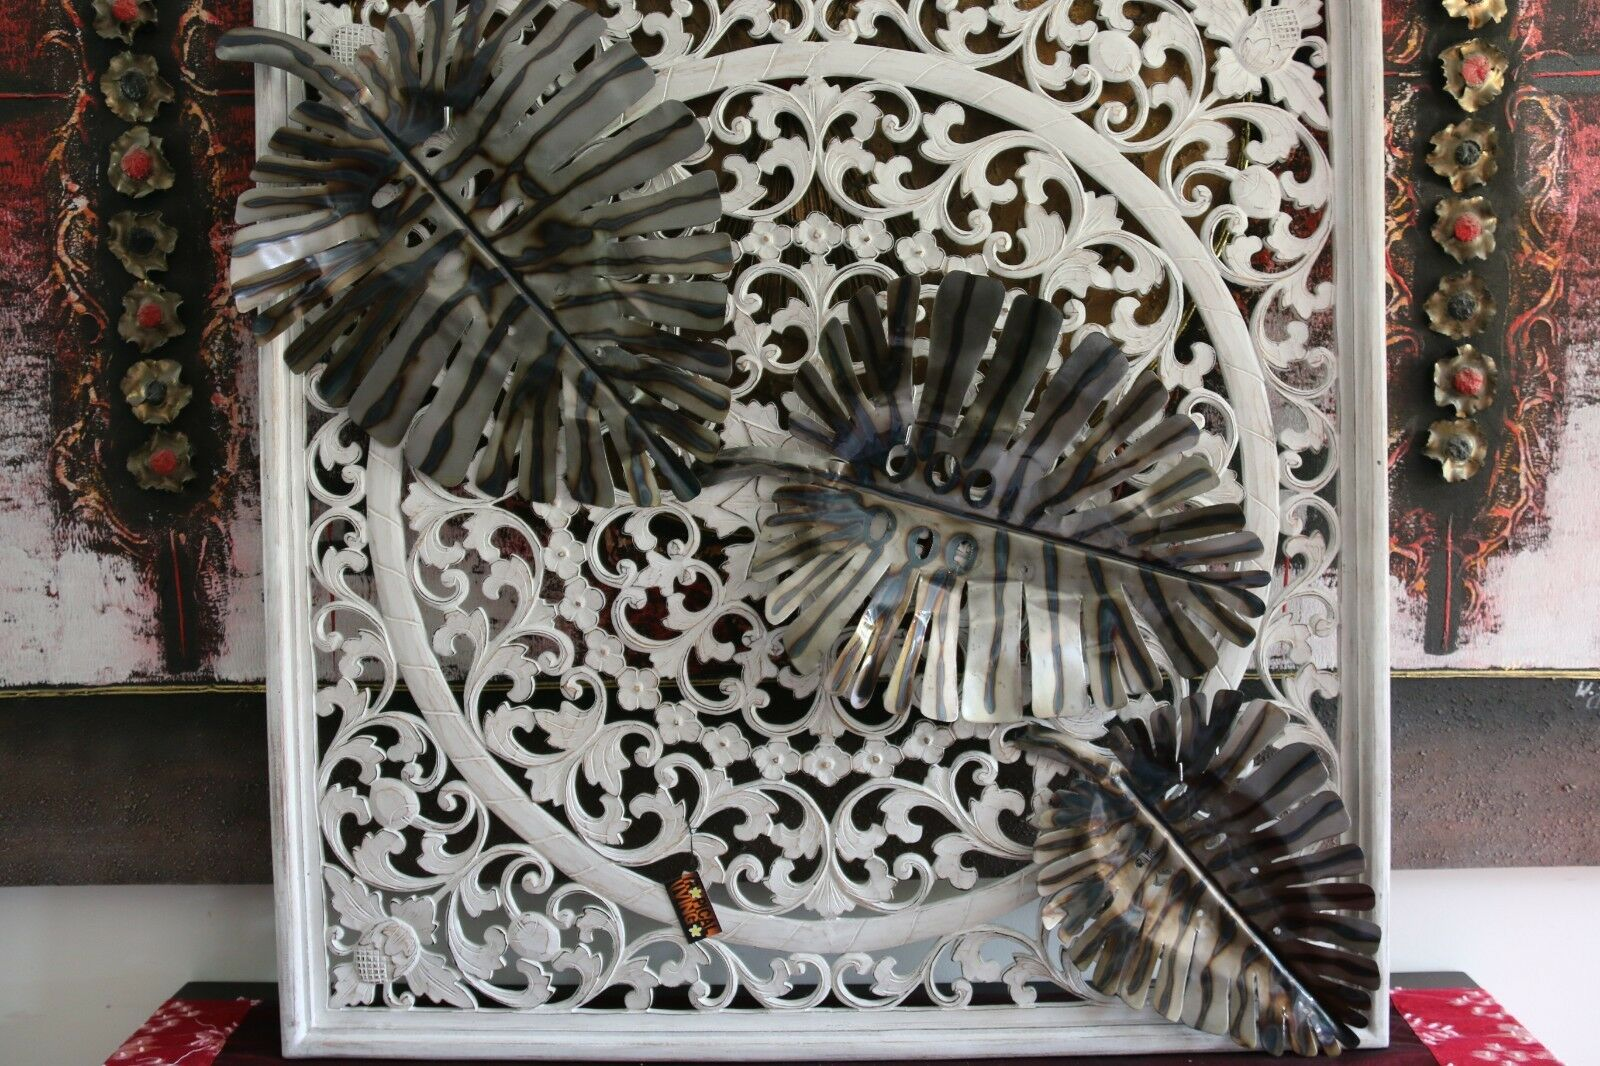 NEW Bali Hand Crafted Bali Metal Wall Art Monstereo Leaf - 3 Sizes Available